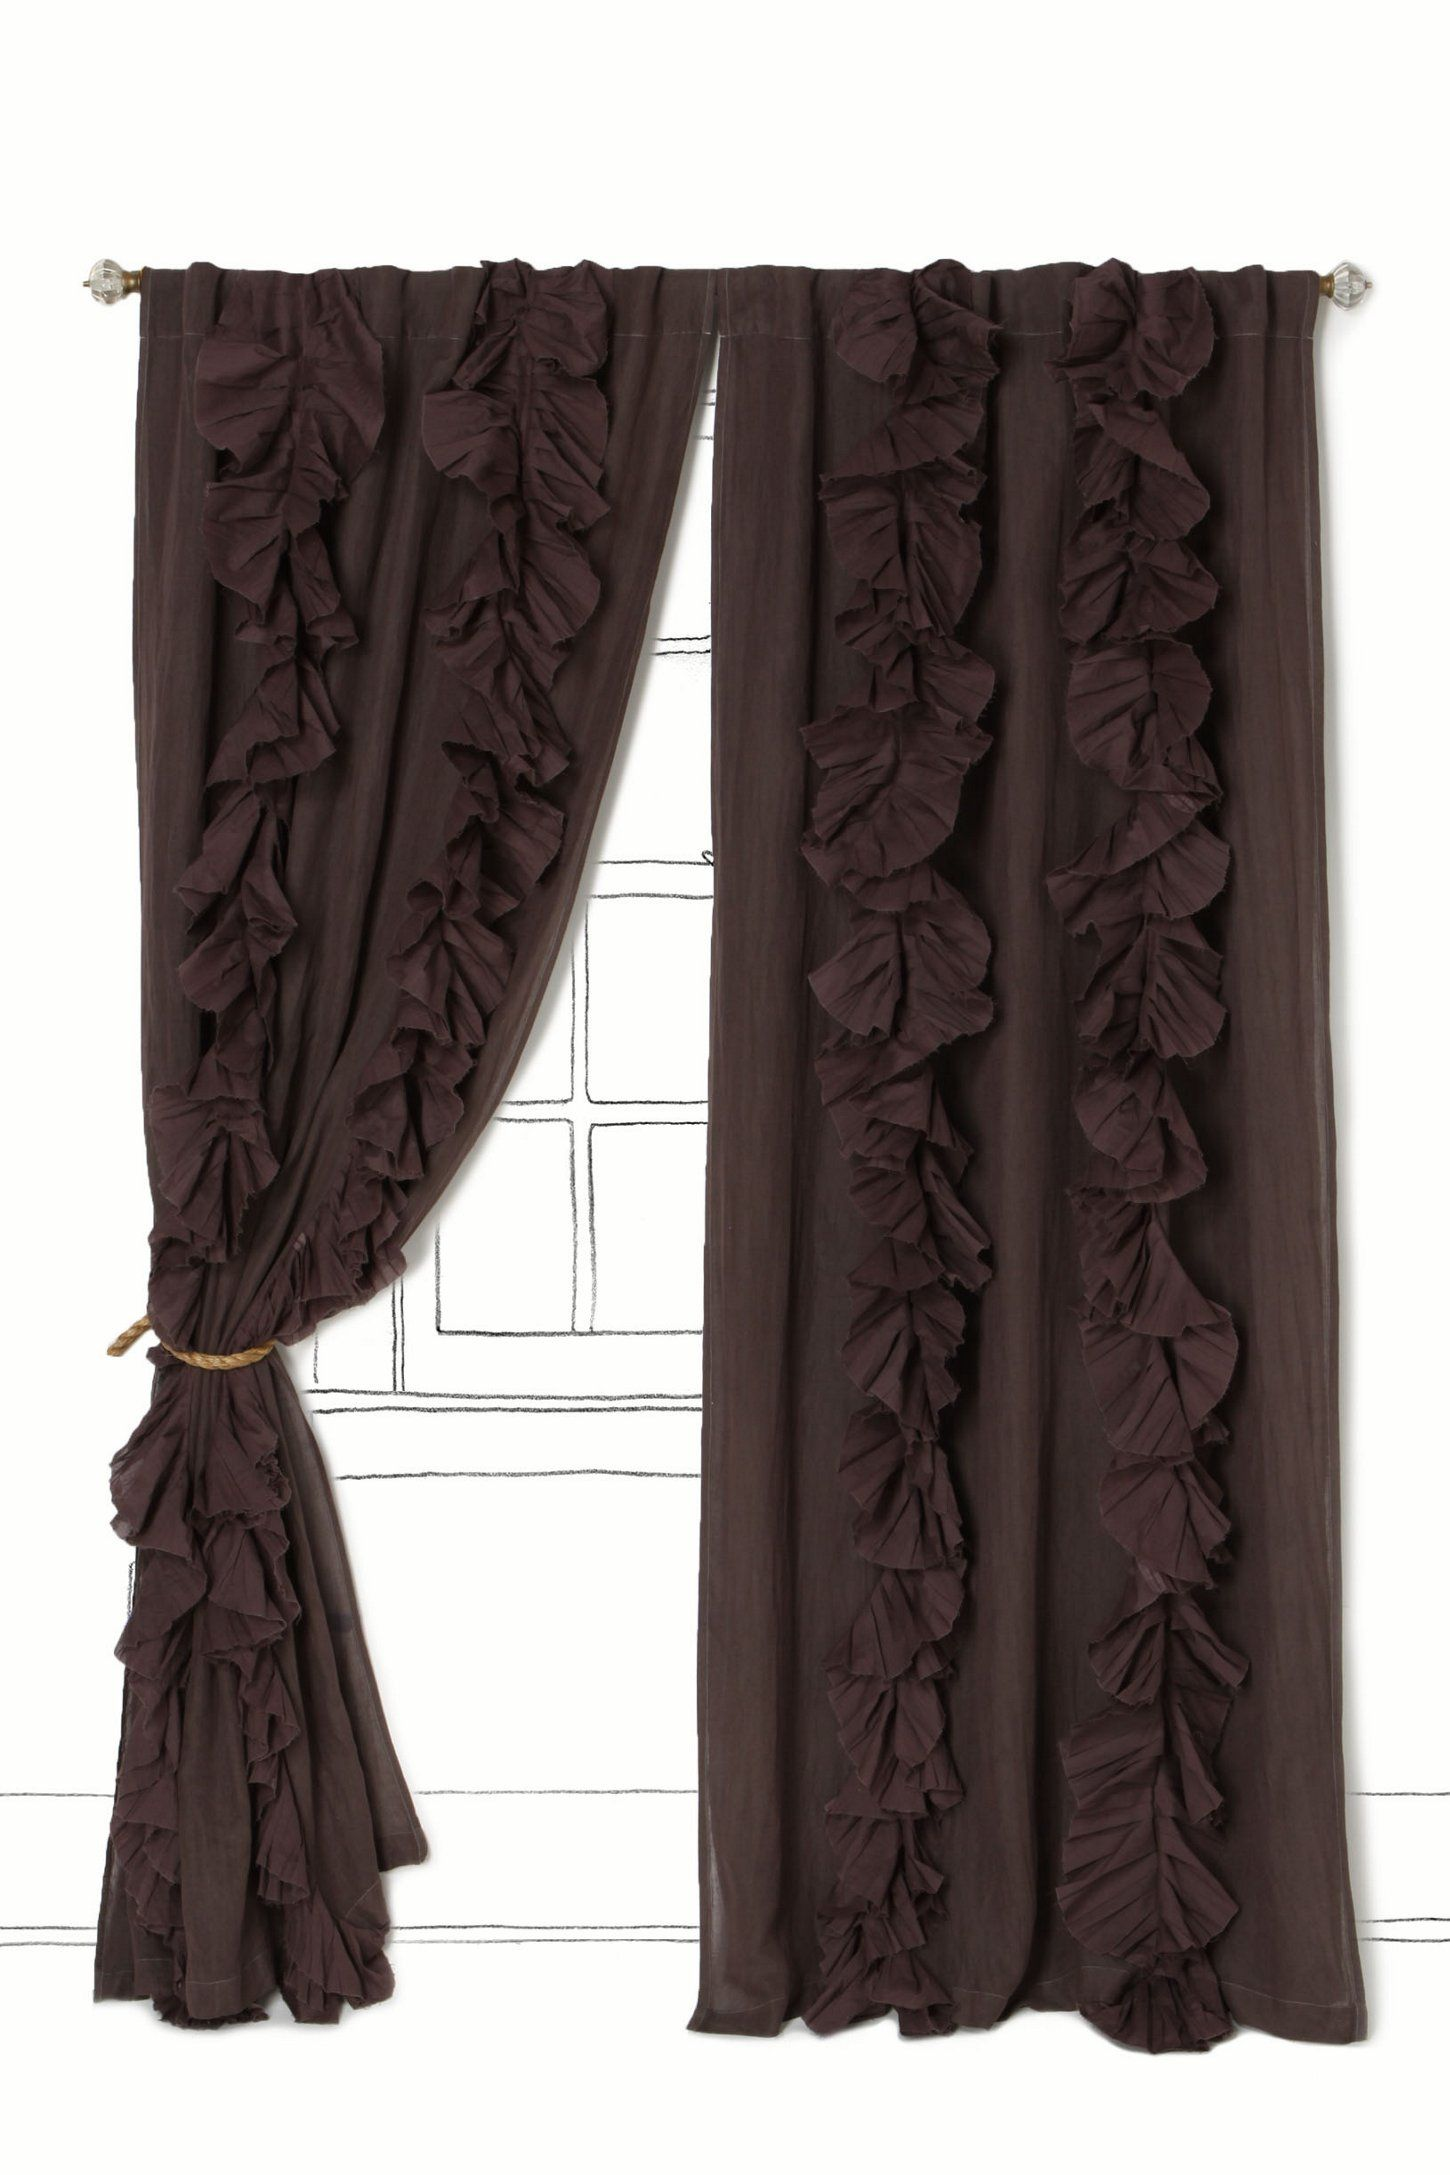 Smithery Curtain Rod   Twin sheets, Twins and Ruffles